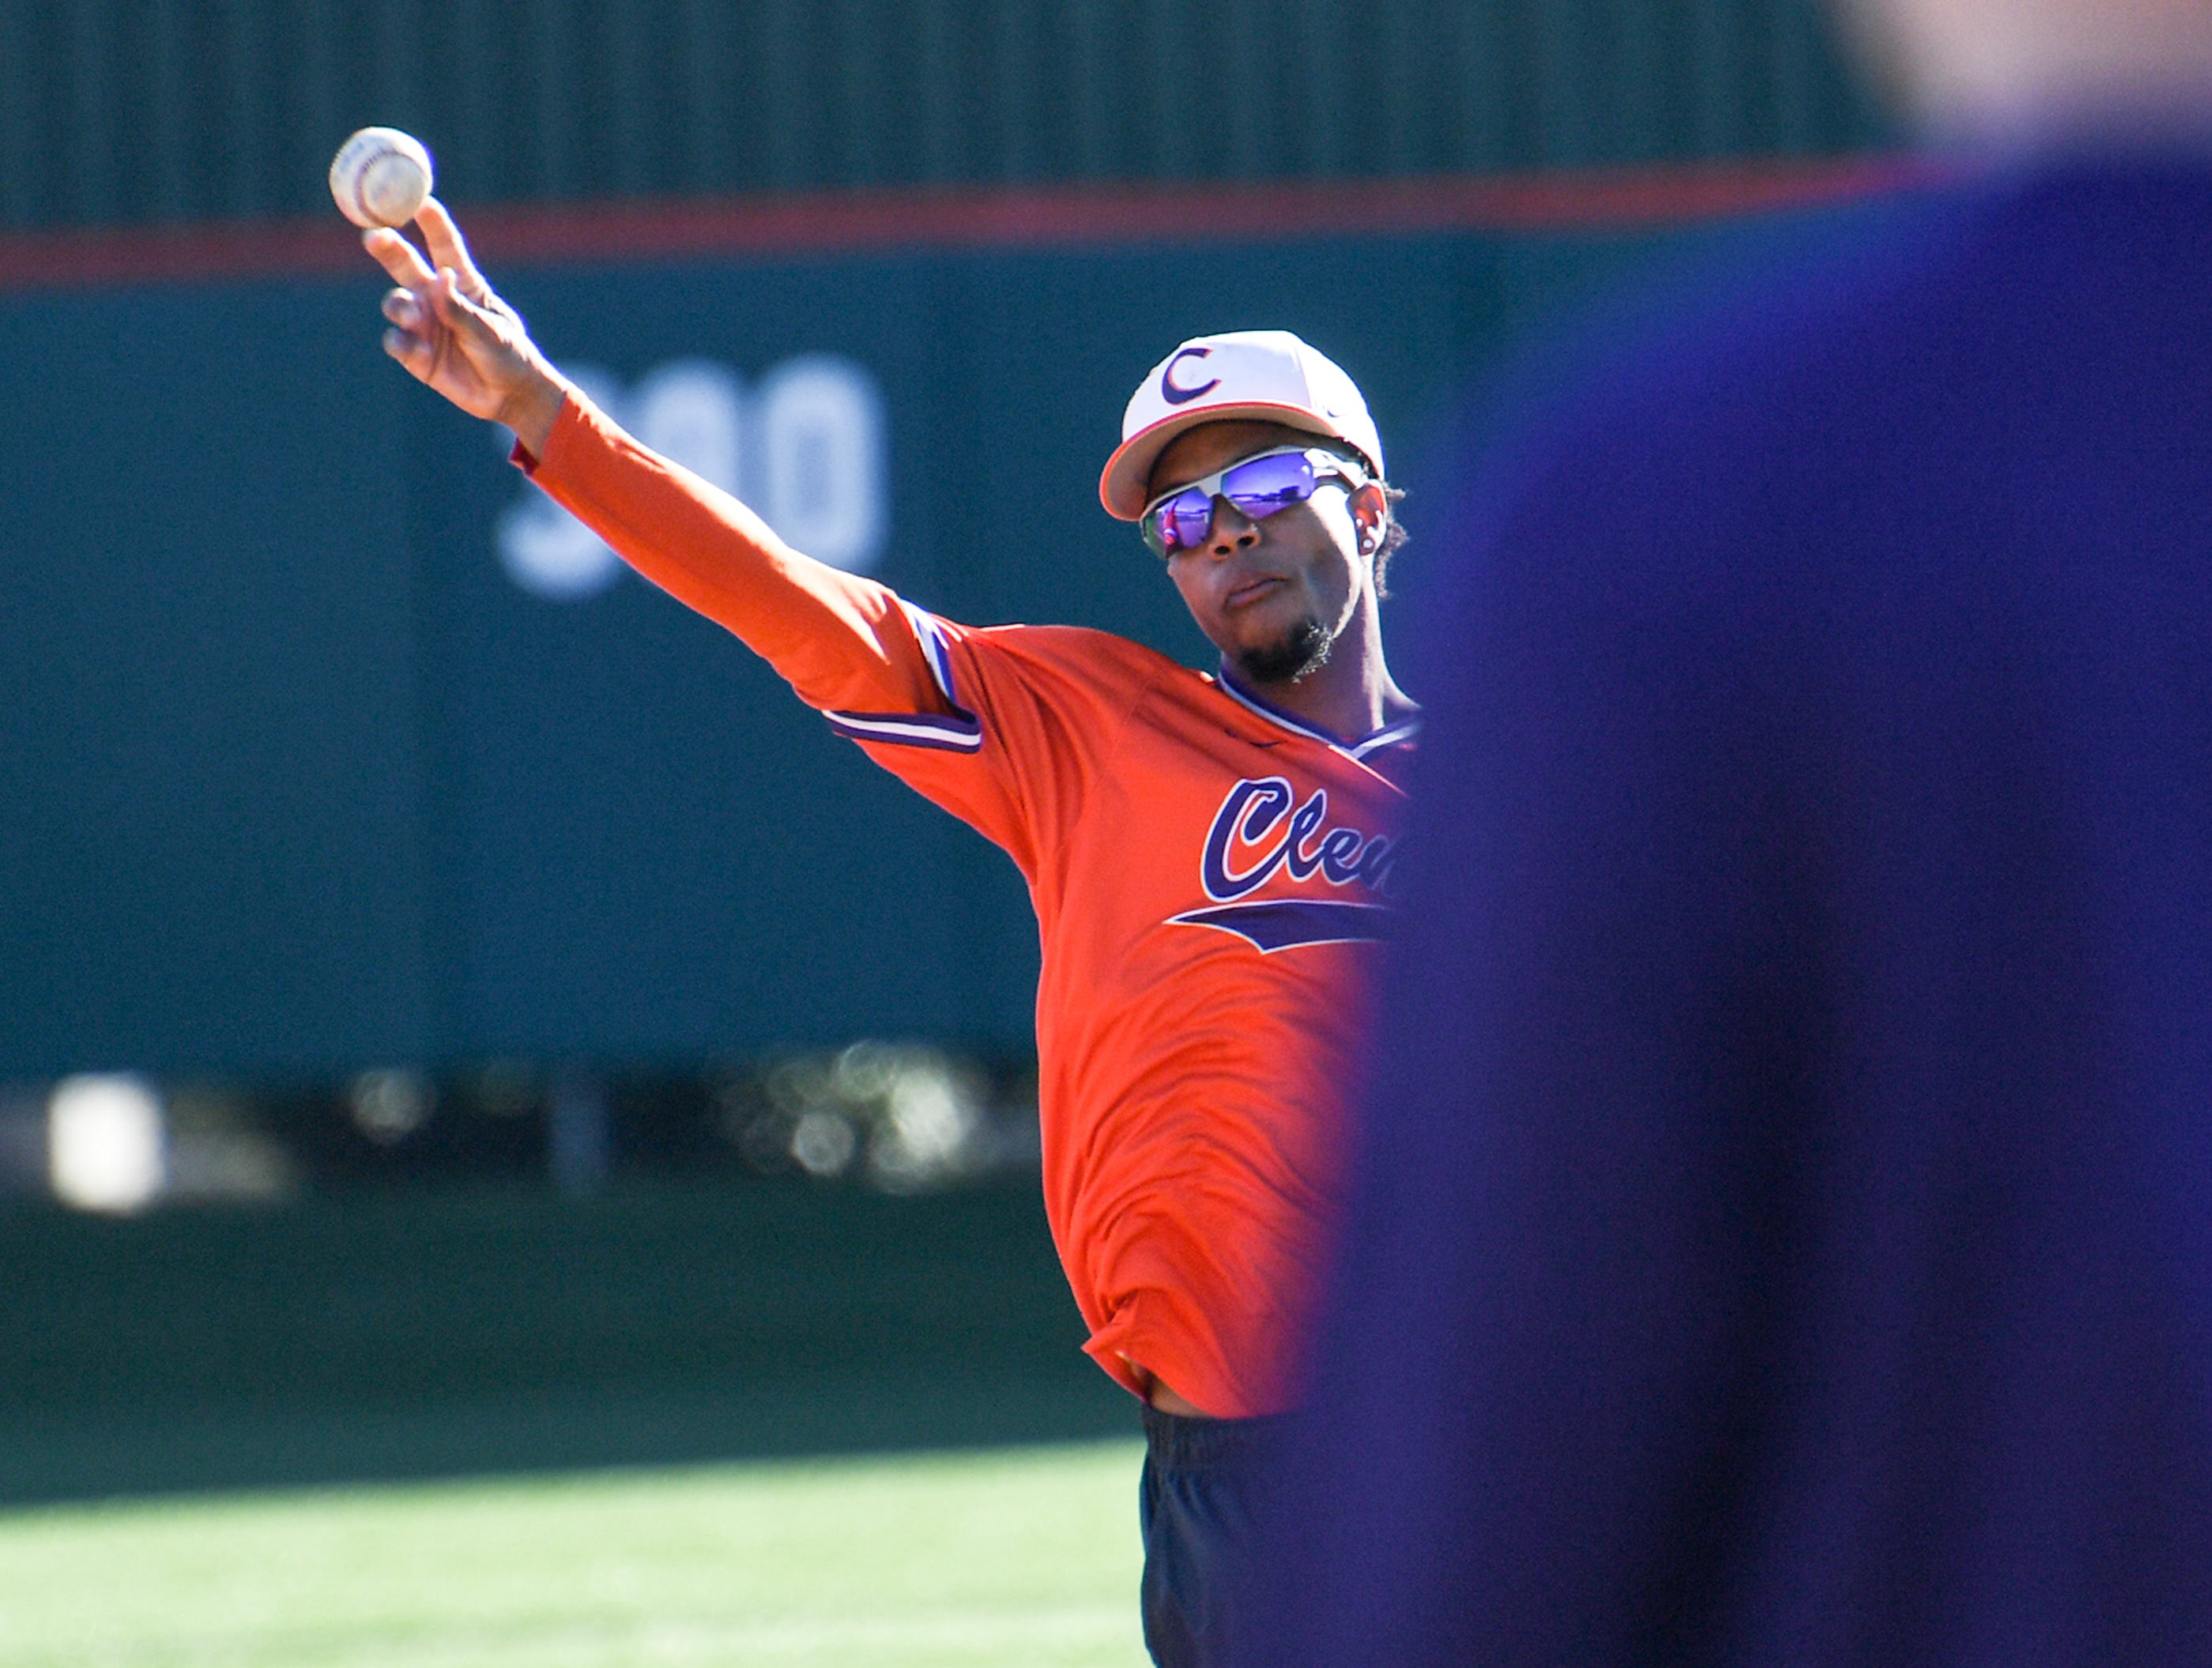 Clemson second baseman Jordan Greene fields a ball to first base during practice at Doug Kingsmore Stadium in Clemson Friday.